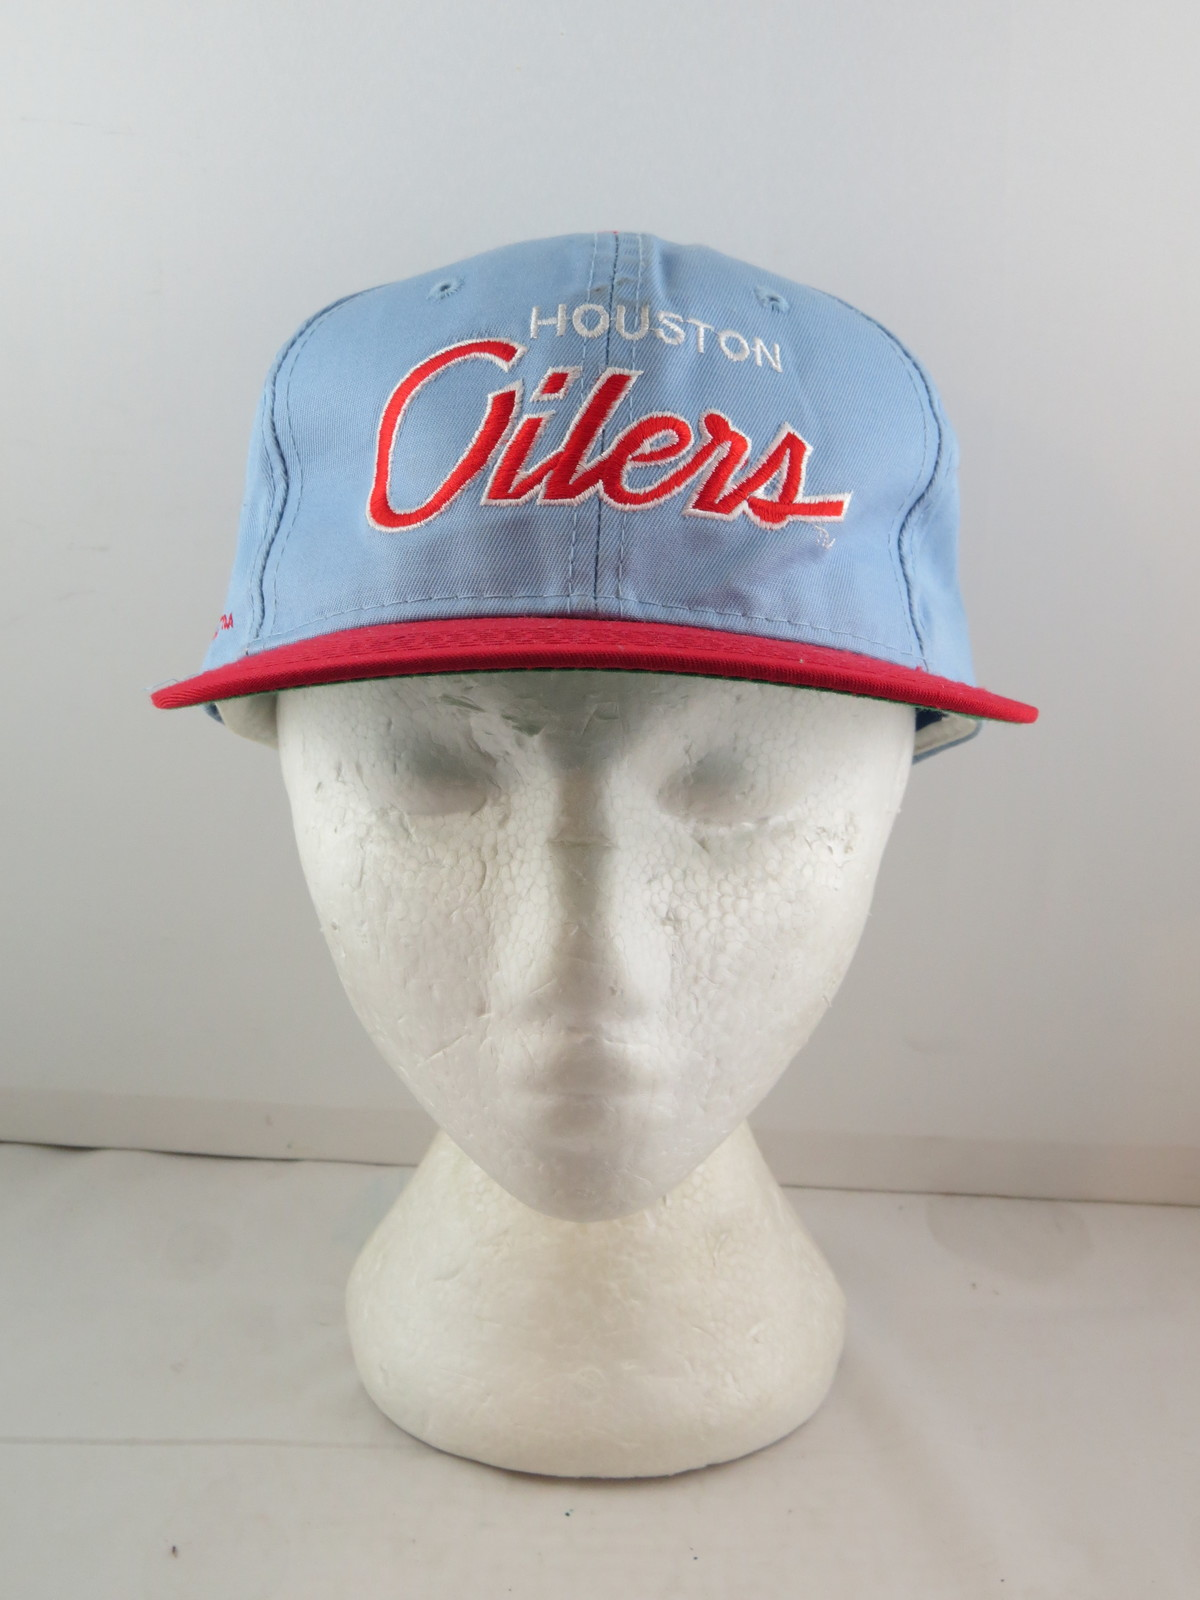 Houston Oilers Hat (VTG) - Twill Script by Sports Specialties - Adult Snapback